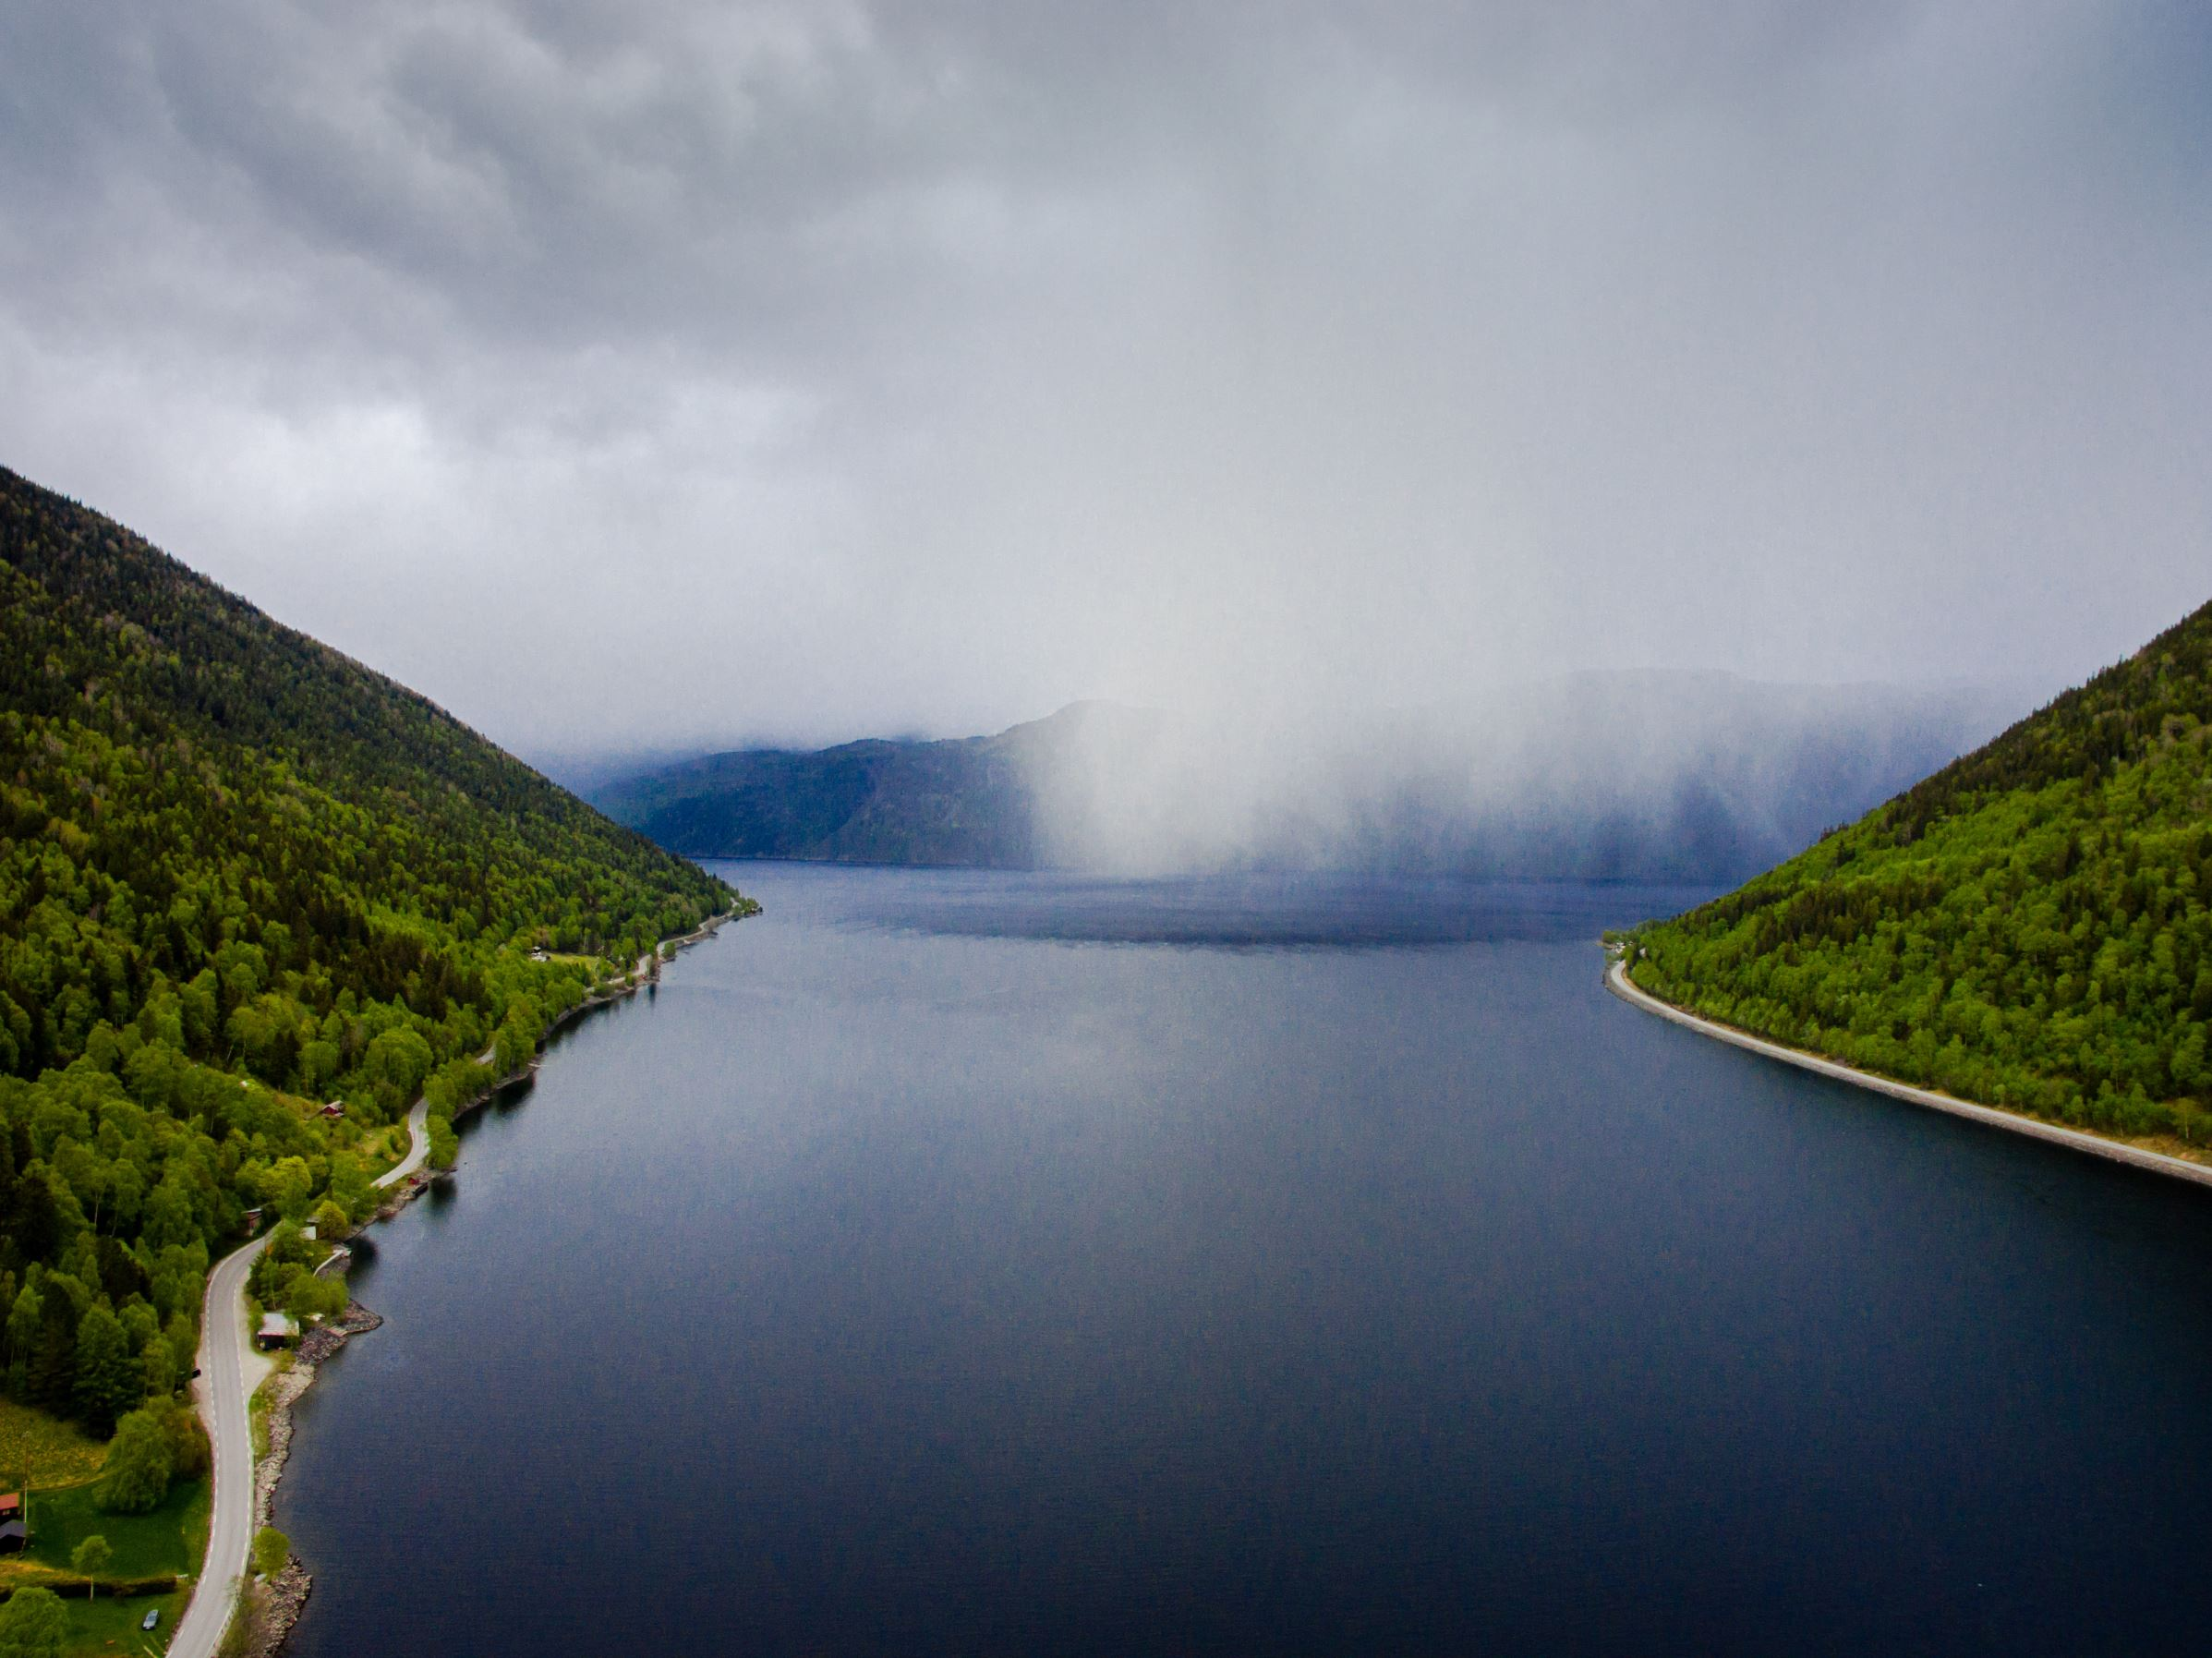 Slide 42 of 100: Part of the Lake Tinn in Rjukan, surrounded by mountains. The water is calm and the fog is falling over the lake. The photo was taken from a high angle view using a drone.  Lake Tinn is one of the largest lakes in Norway. It is situated between the munic